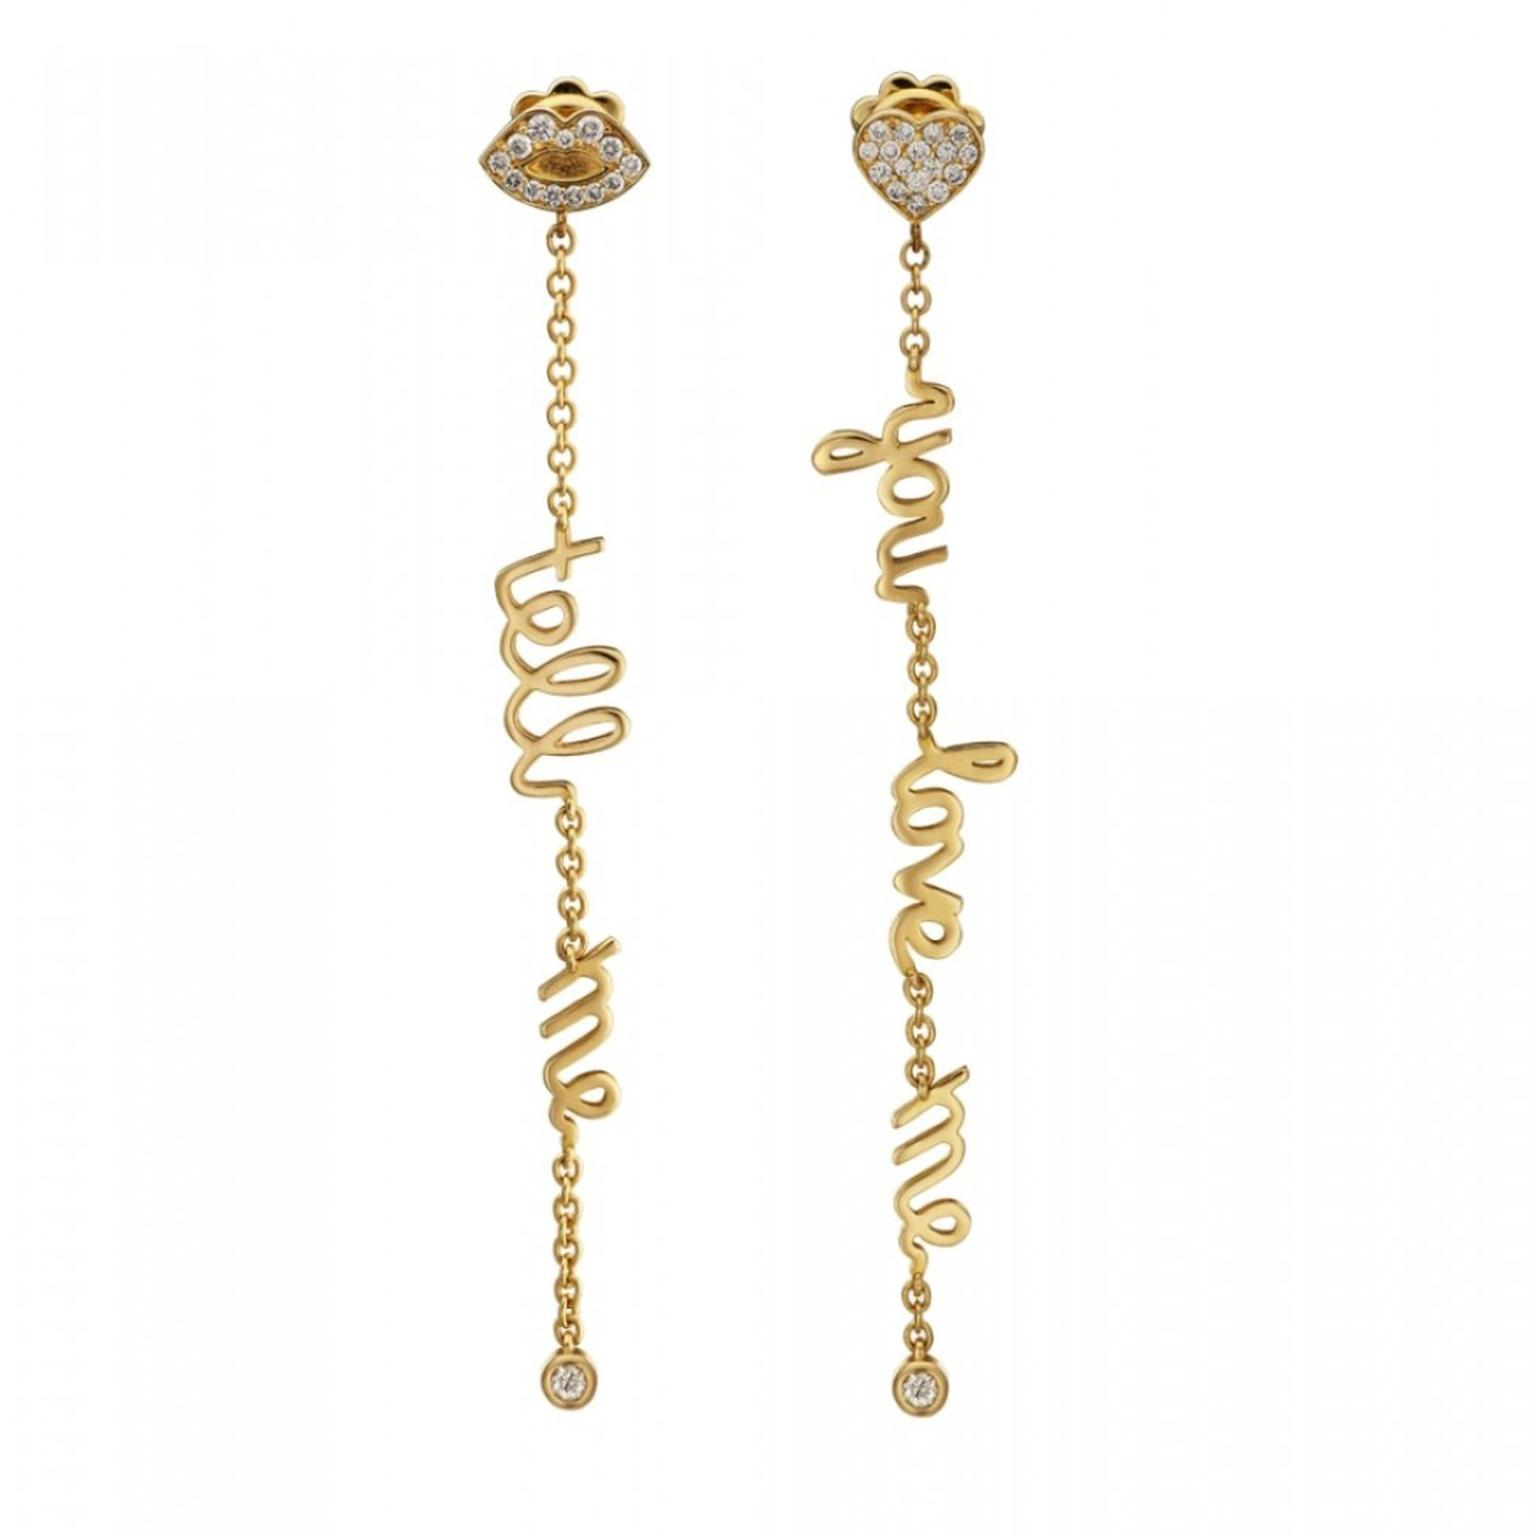 Maria Kovadi Tell Me You Love Me earrings